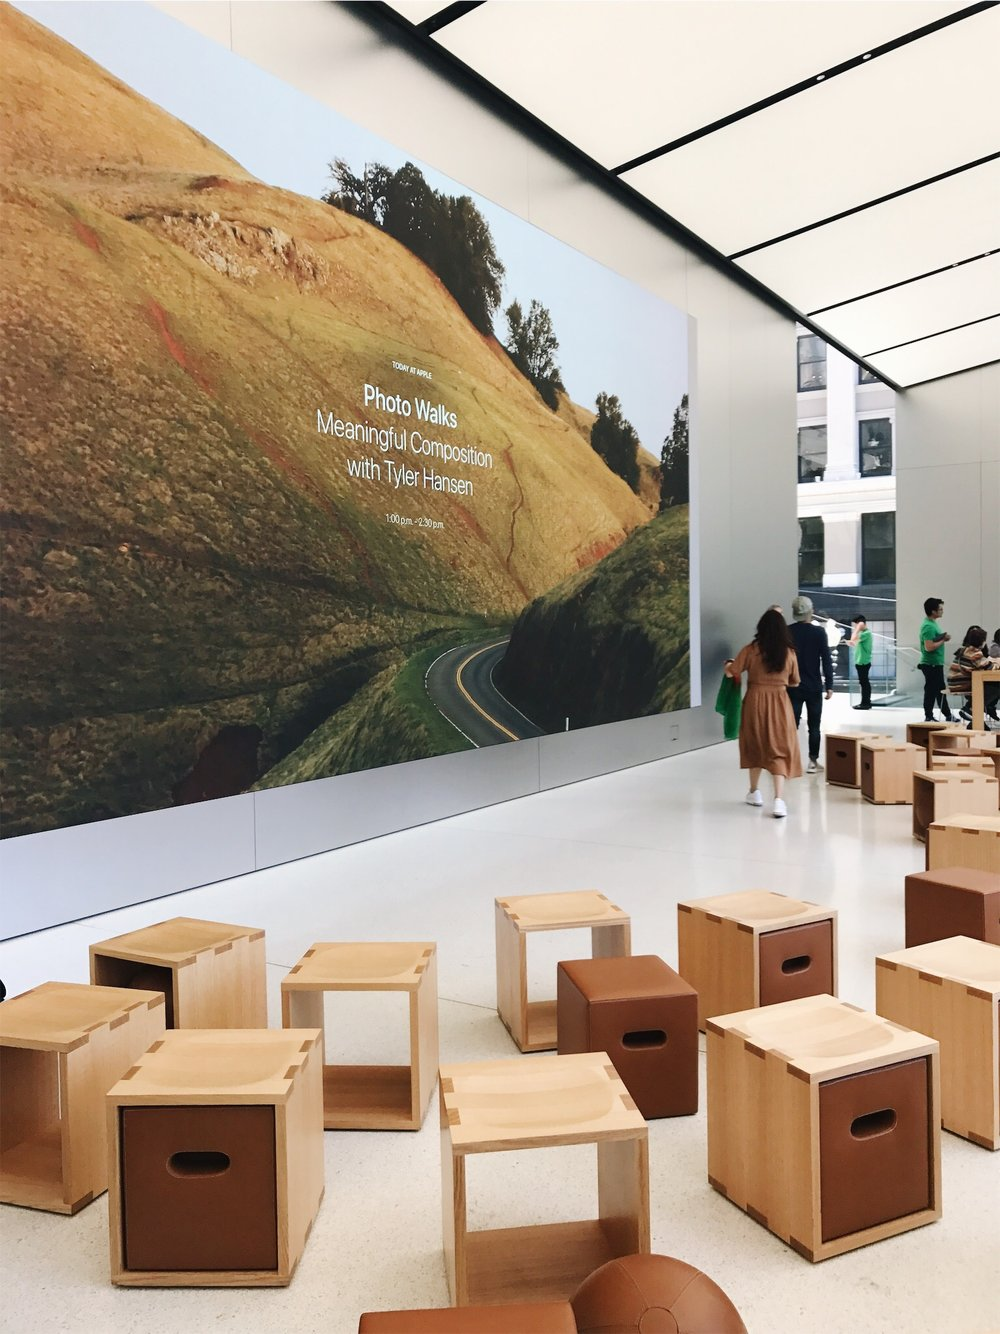 Apple – #todayatapple - I discovered talent from the VSCO community to host Apple events at 50 locations around the world to launch the 'Today at Apple' program. This included coordinating the events, gathering and organizing all assets, and being the point of contact between creators and the Apple team.